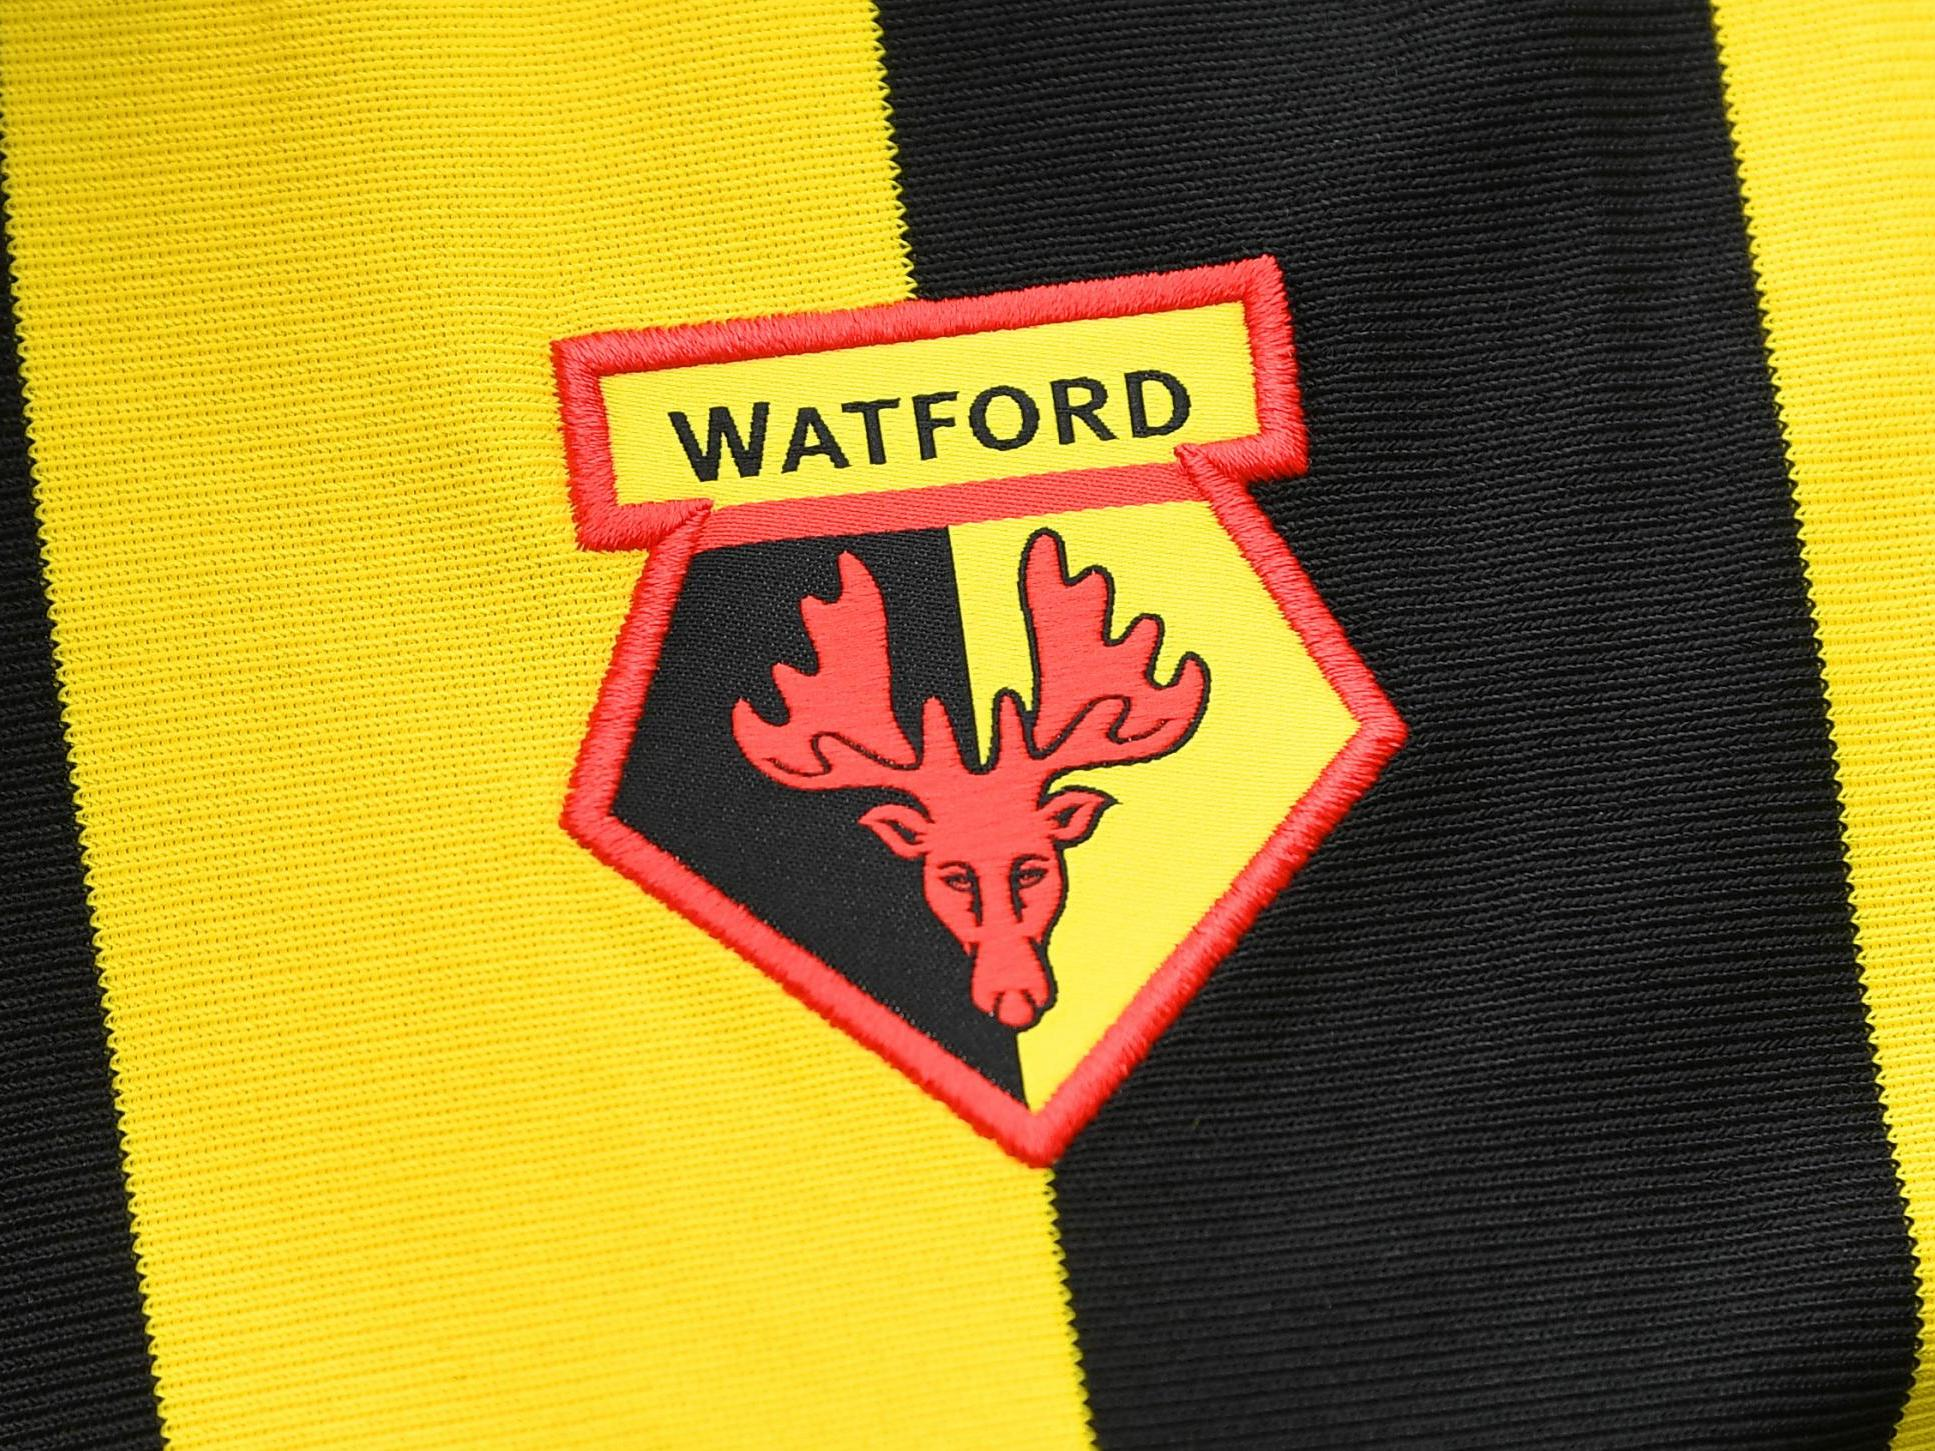 Watford Badge Hornets Opt Against New Crest After 4 000 New Designs The Independent The Independent